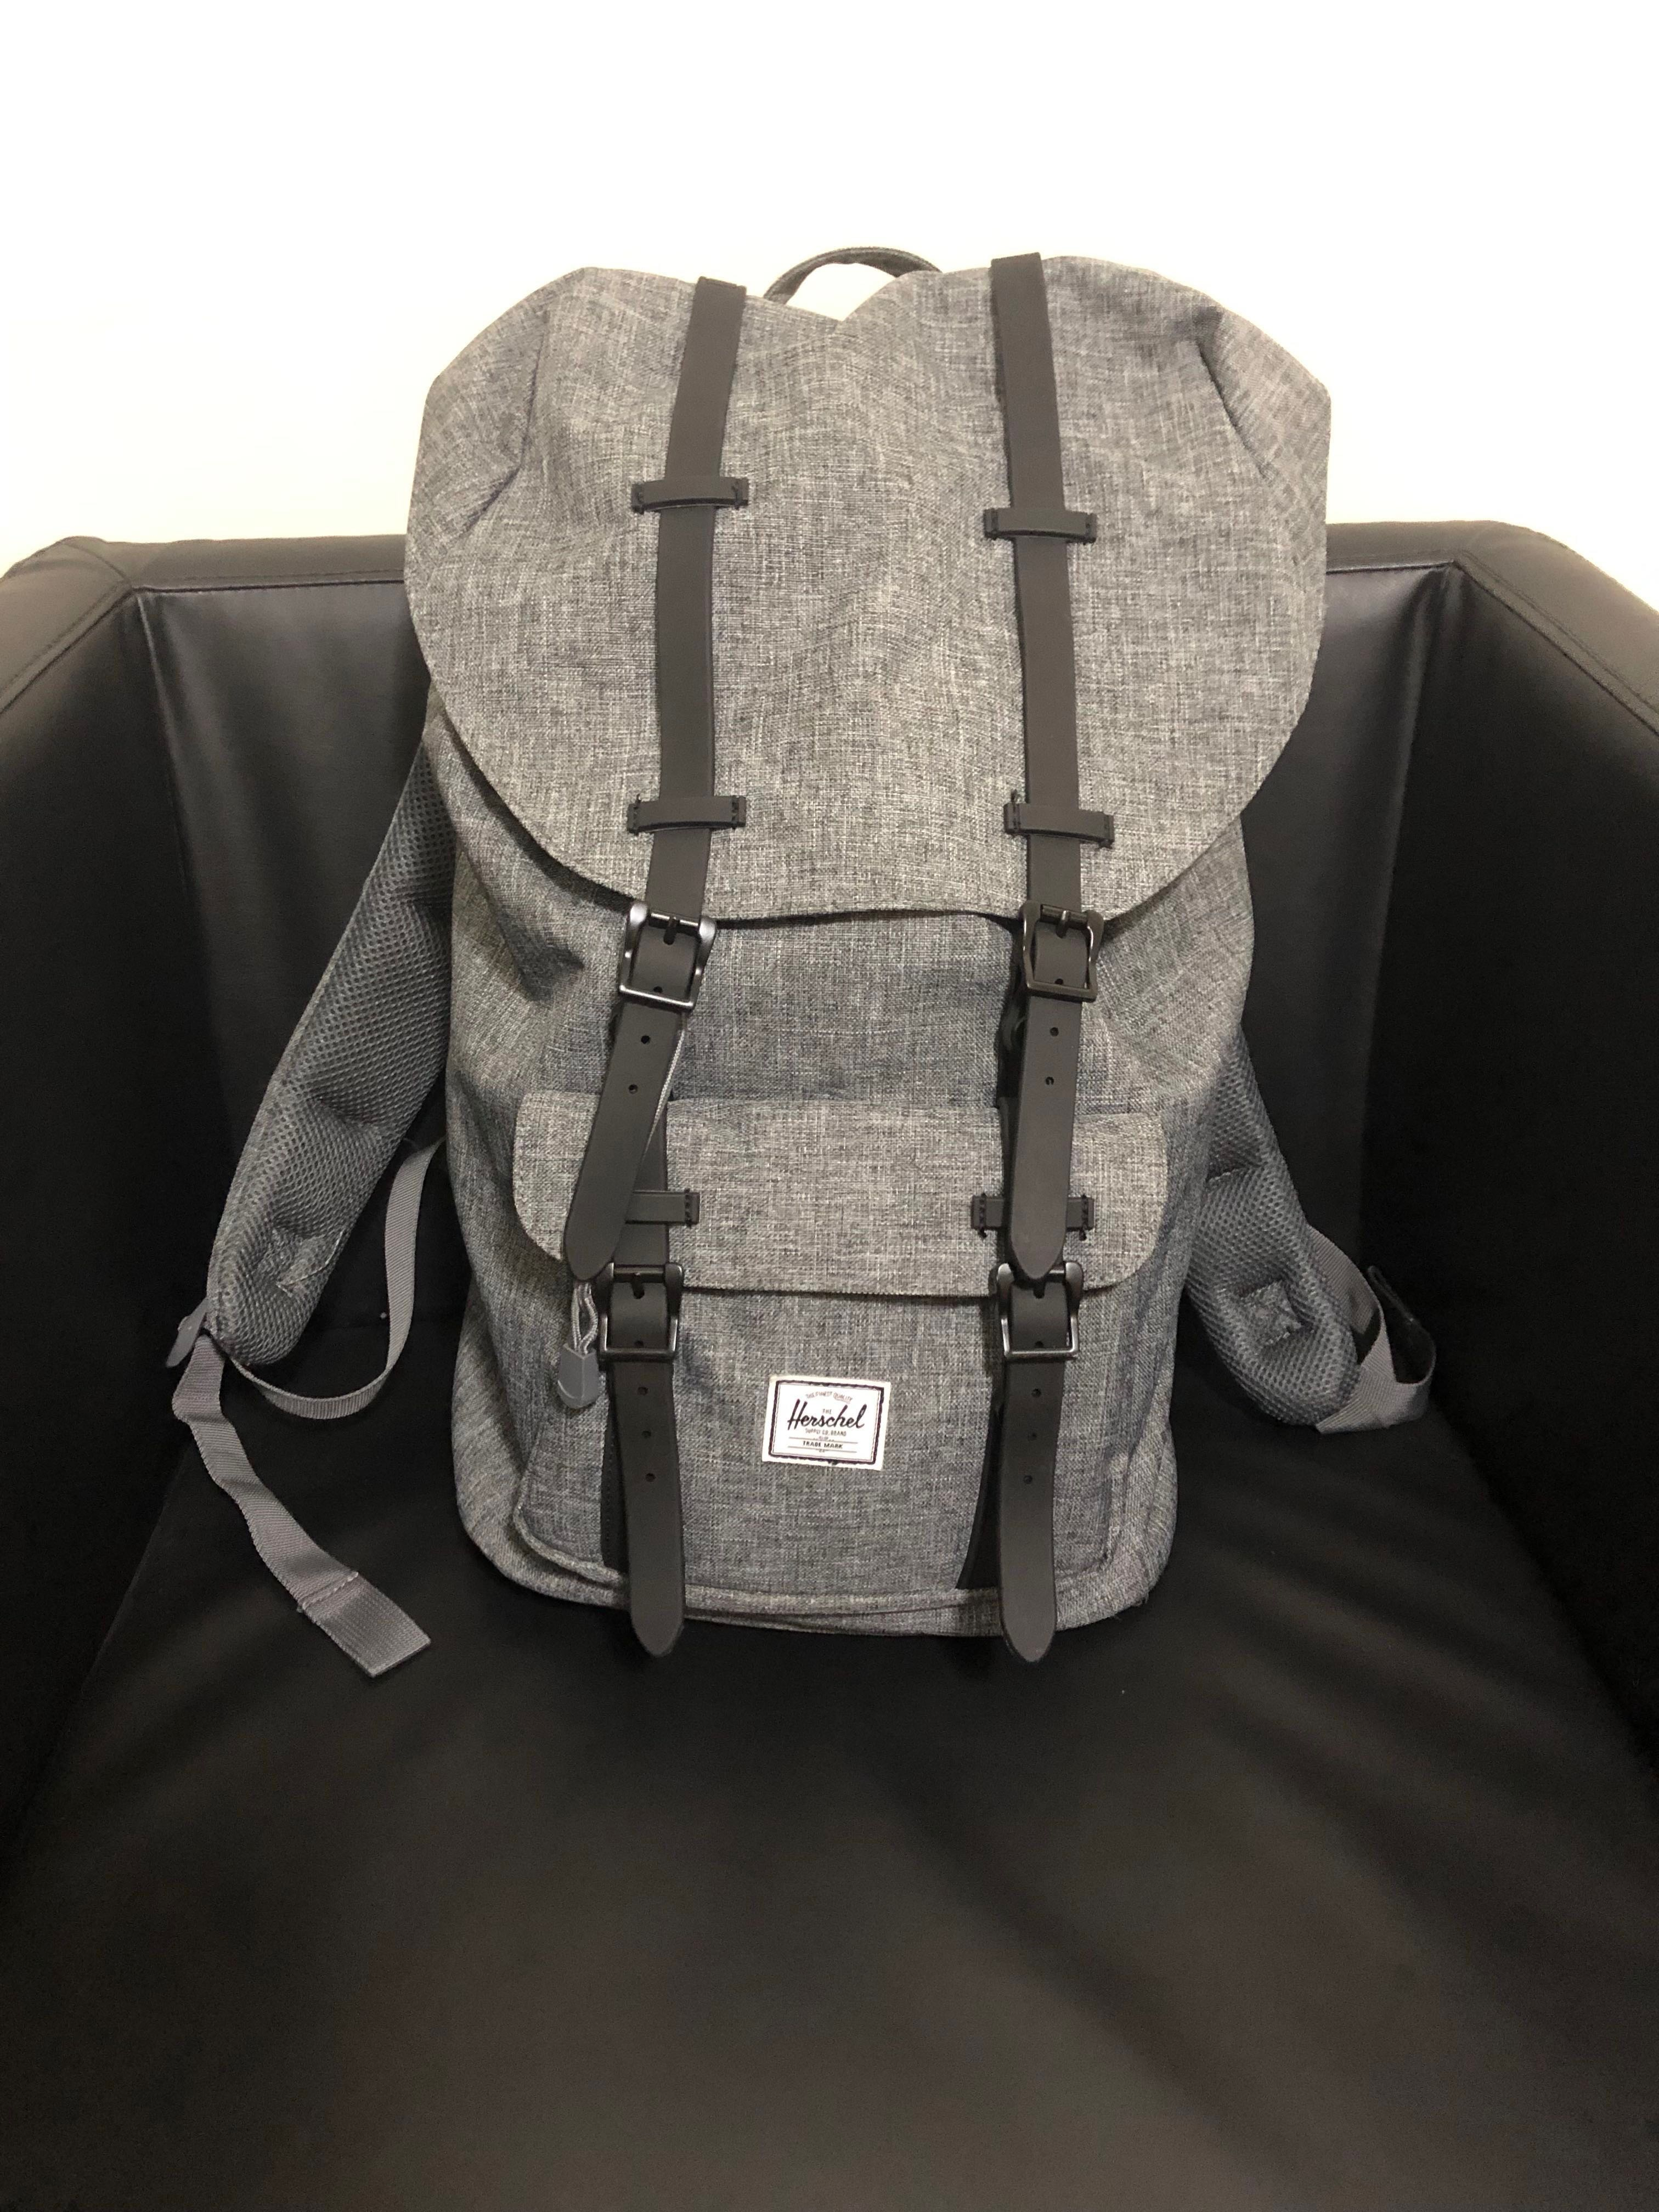 Herschel Backpack 91c837a364990